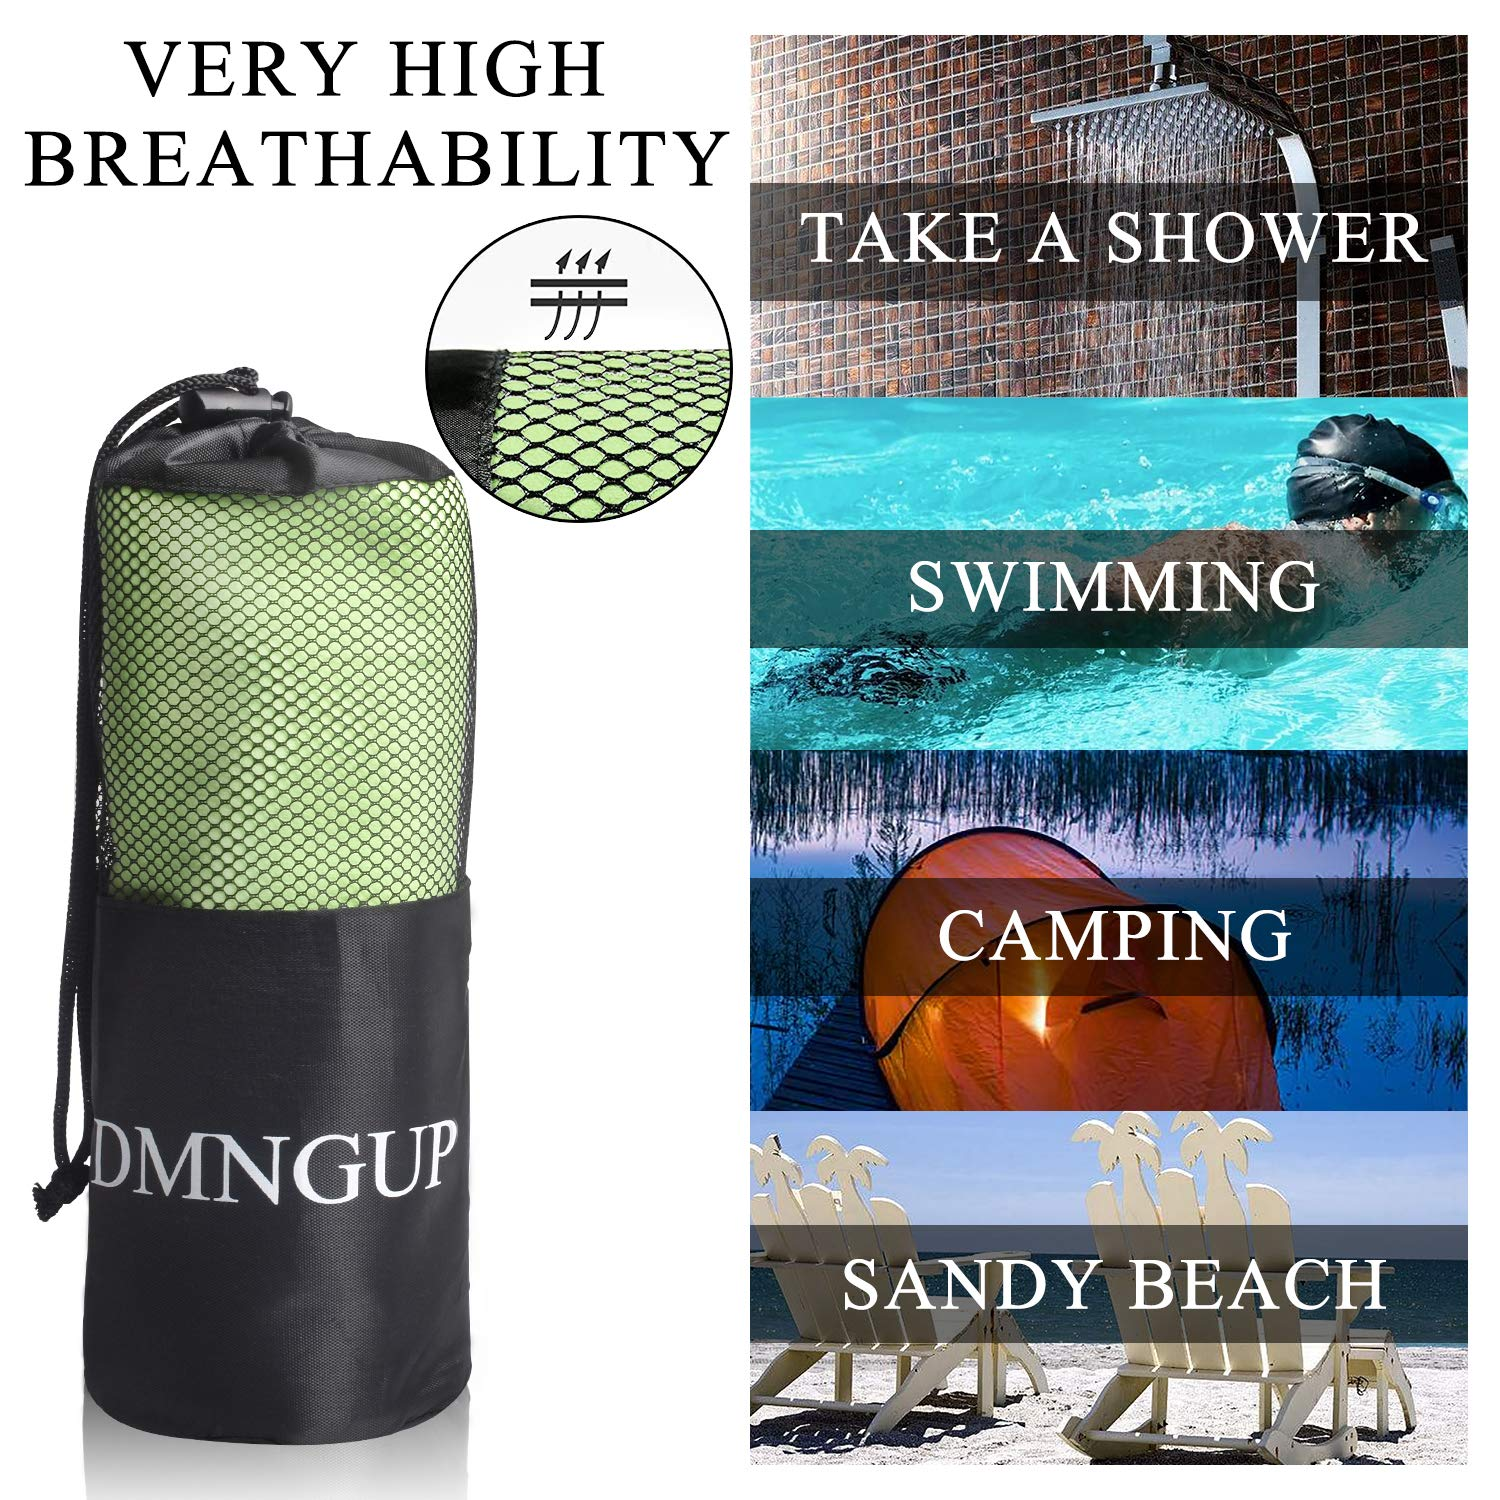 Microfiber Beach Towel Sports/&Travel Towels Fast Drying Super Absorbent Compact Lightweight Gym Towel Set for Camping//Hiking Swimming//Backpacking//Yoga Fitness CSWL